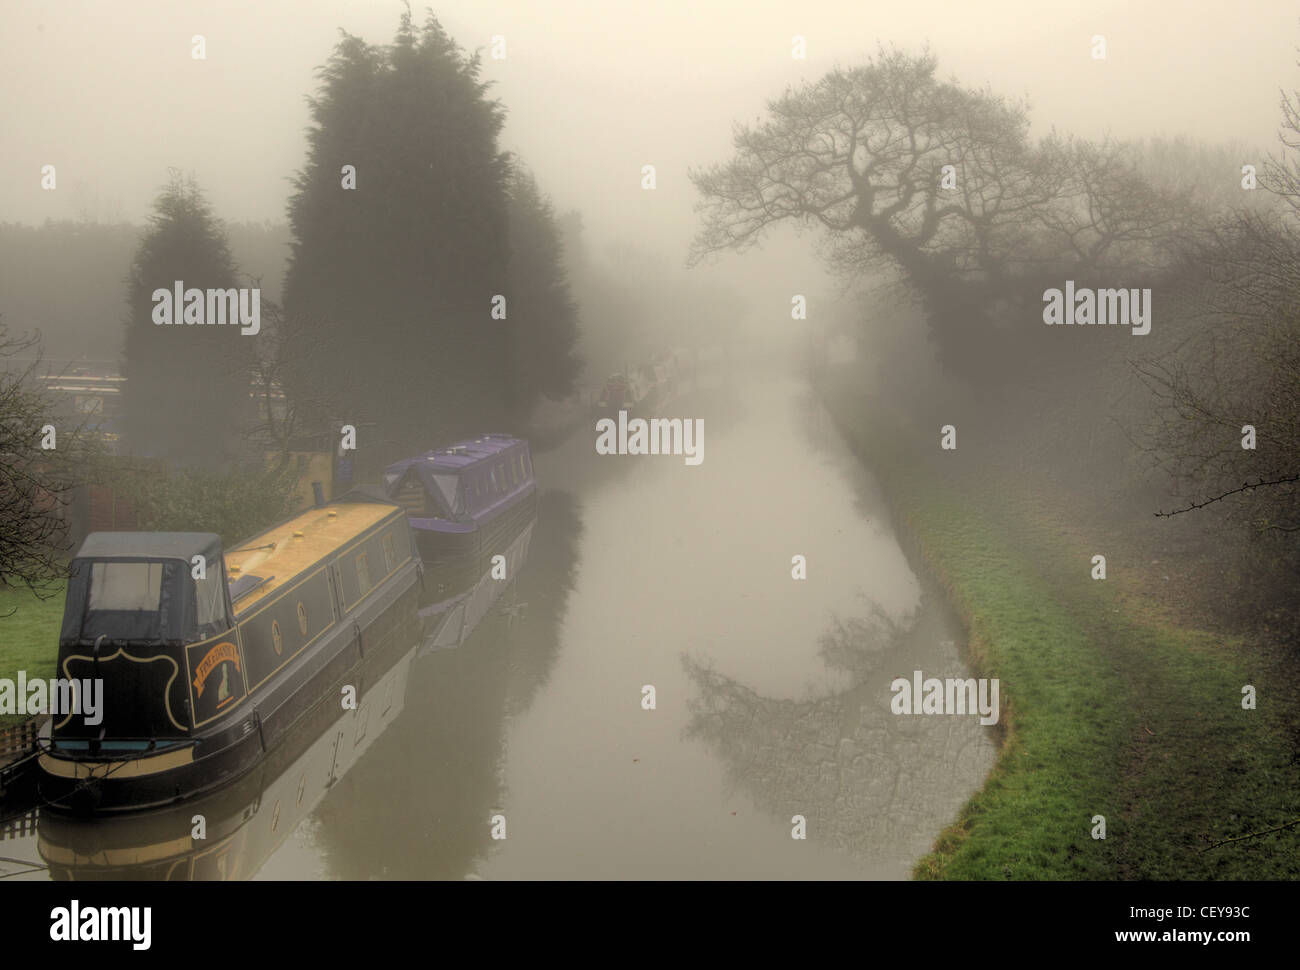 Misty,morning,on,the,Trent,&,Mersey,canal,at,Rudheath,Northwich,canal,boat,boats,barge,canalbarge,england,cheshire,UK,GB,great,Britain,atmospheric,image,vale,royal,still,tourism,travel,image,northern,NW,north,west,northwest,canalrivertrust.org.uk,canal,river,trust,Orchard,Boatyard,marina,gotonysmith,beautiful,the,best,british,canal,photos,world,canalworld,T&M,water,way,waterway,CW9,7RG,CW97RG,gotonysmith,Buy Pictures of,Buy Images Of